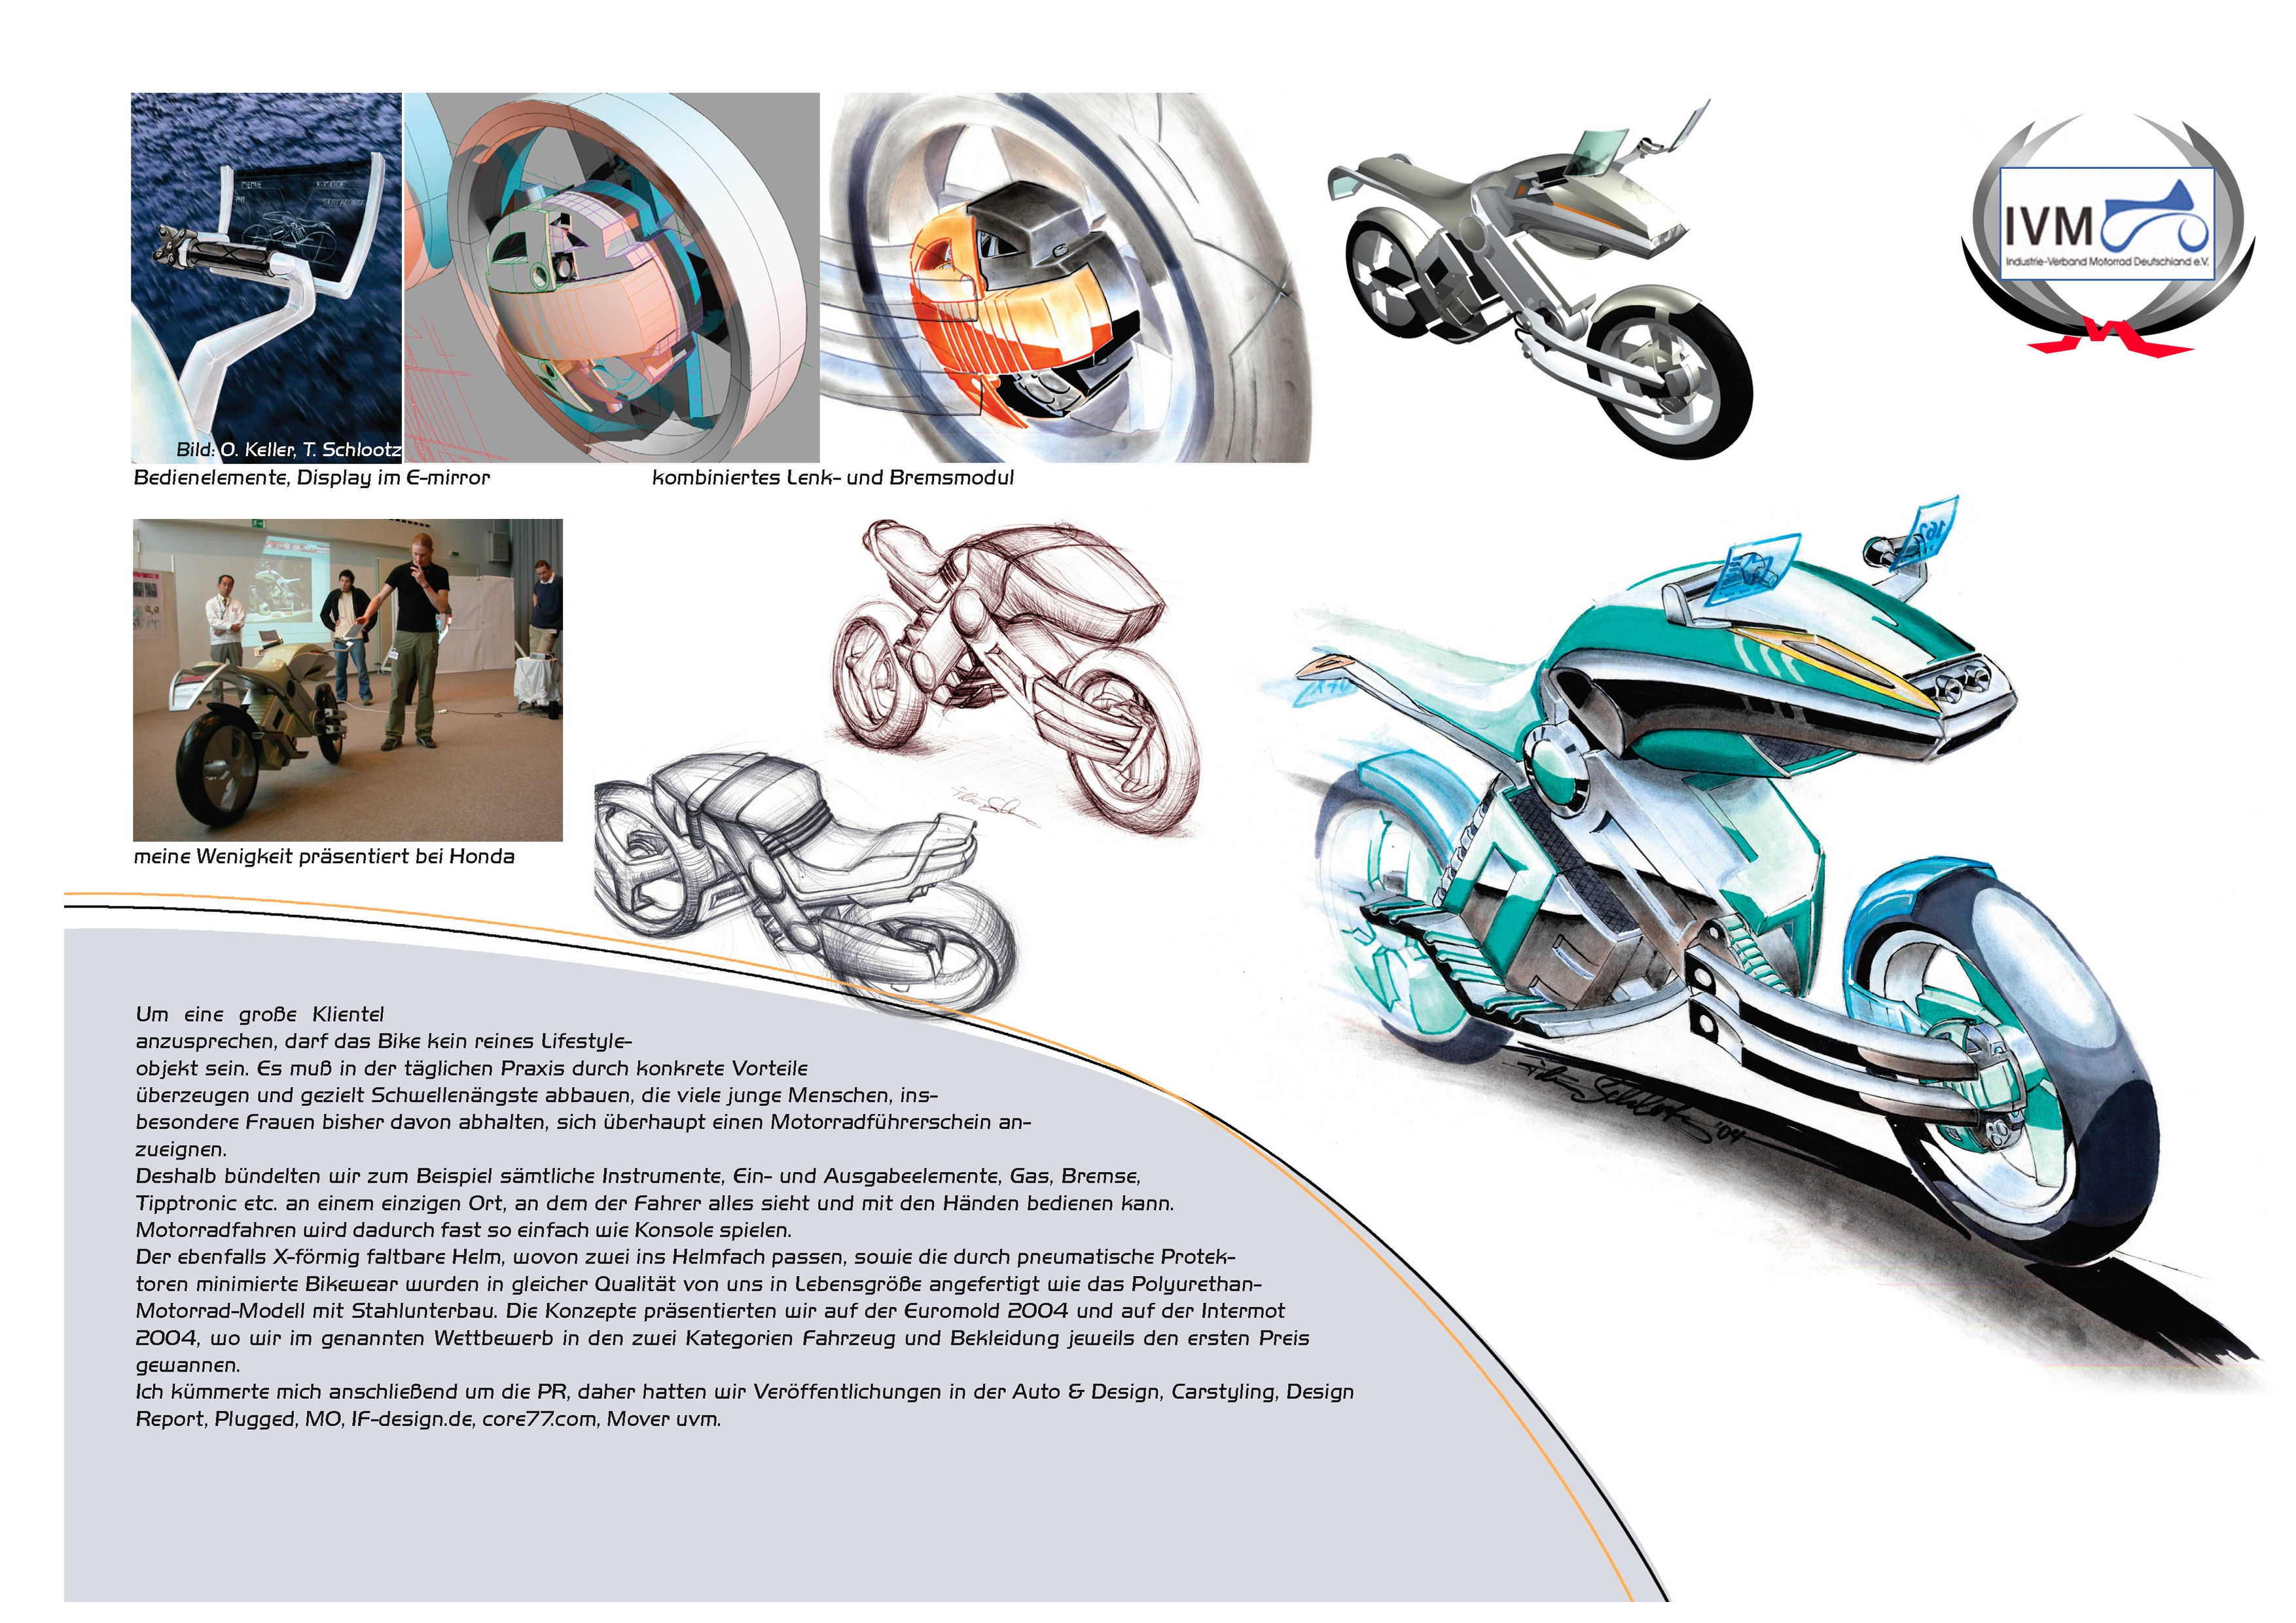 Frankfurt-based-automotive-designer-tilmann-schlootz-design-branding-ux-product-design-Honda-Europe-hybrid-motorcycle-concept-OFX-cross-dirt-bike-street-race-bike-switch-positions-ergonomics-02